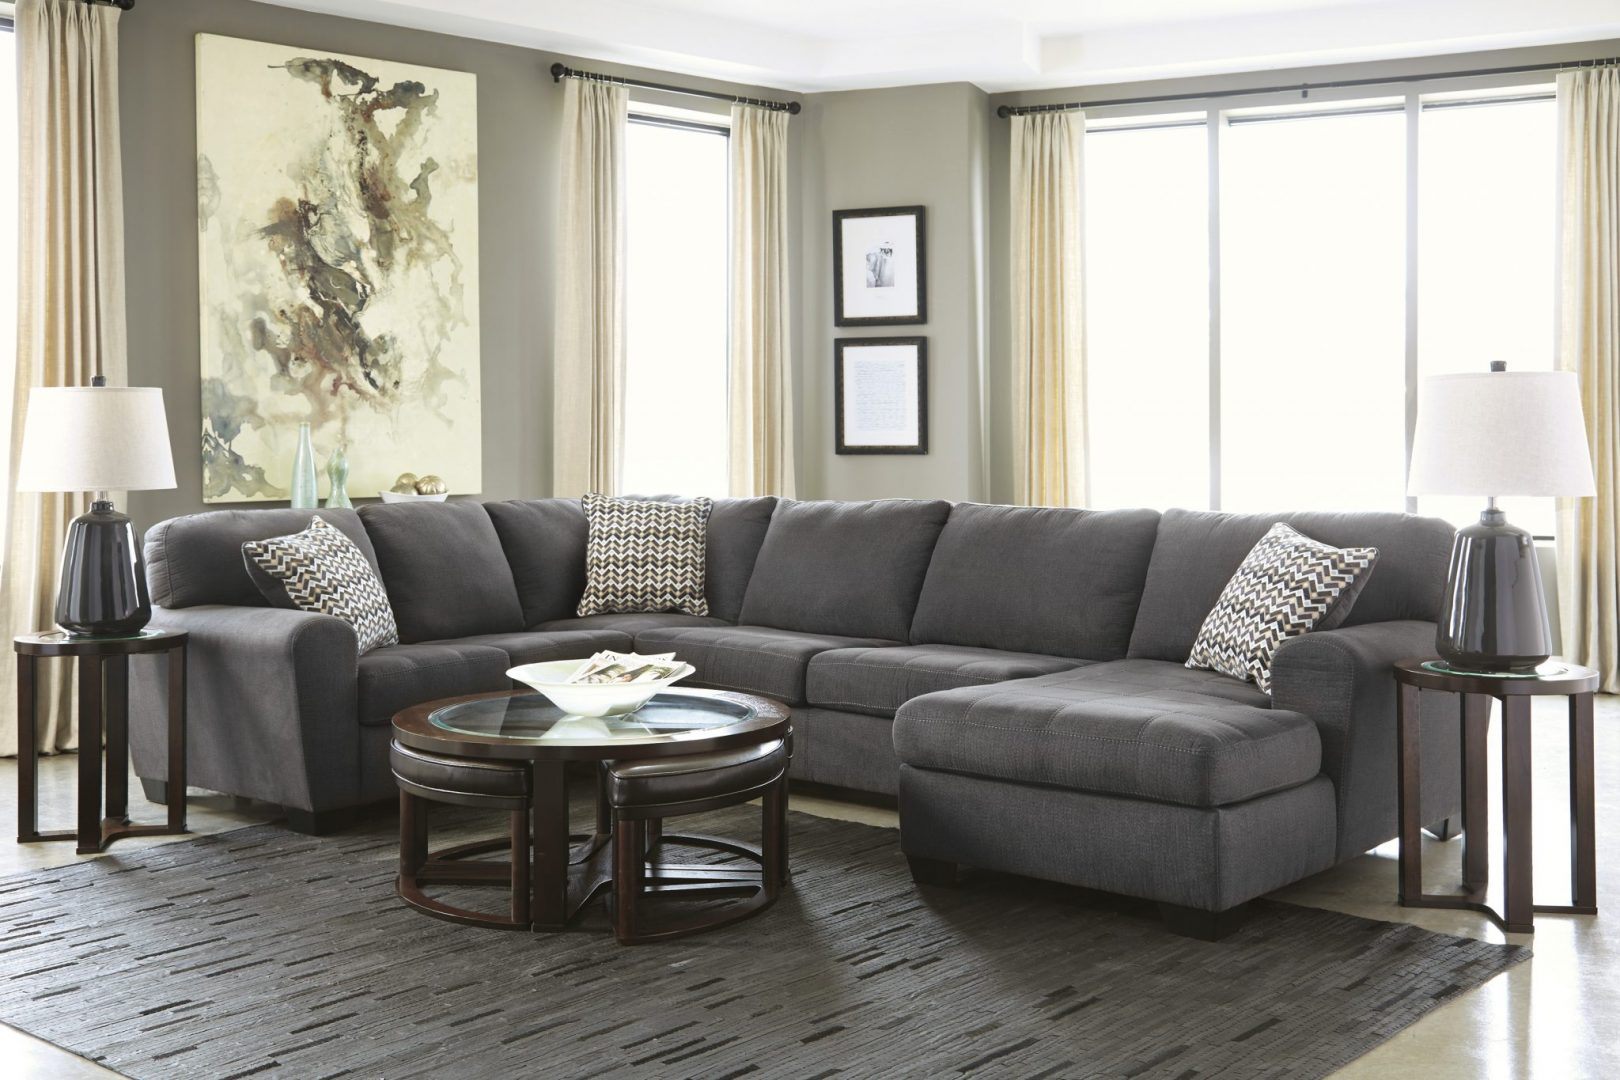 Home Express Furniture We Are Your Trusted Choice For Affordable American Made Furniture As The Largest Furniture Outlet In Reno Nevada Home Express Furniture We Are Your Trusted Choice